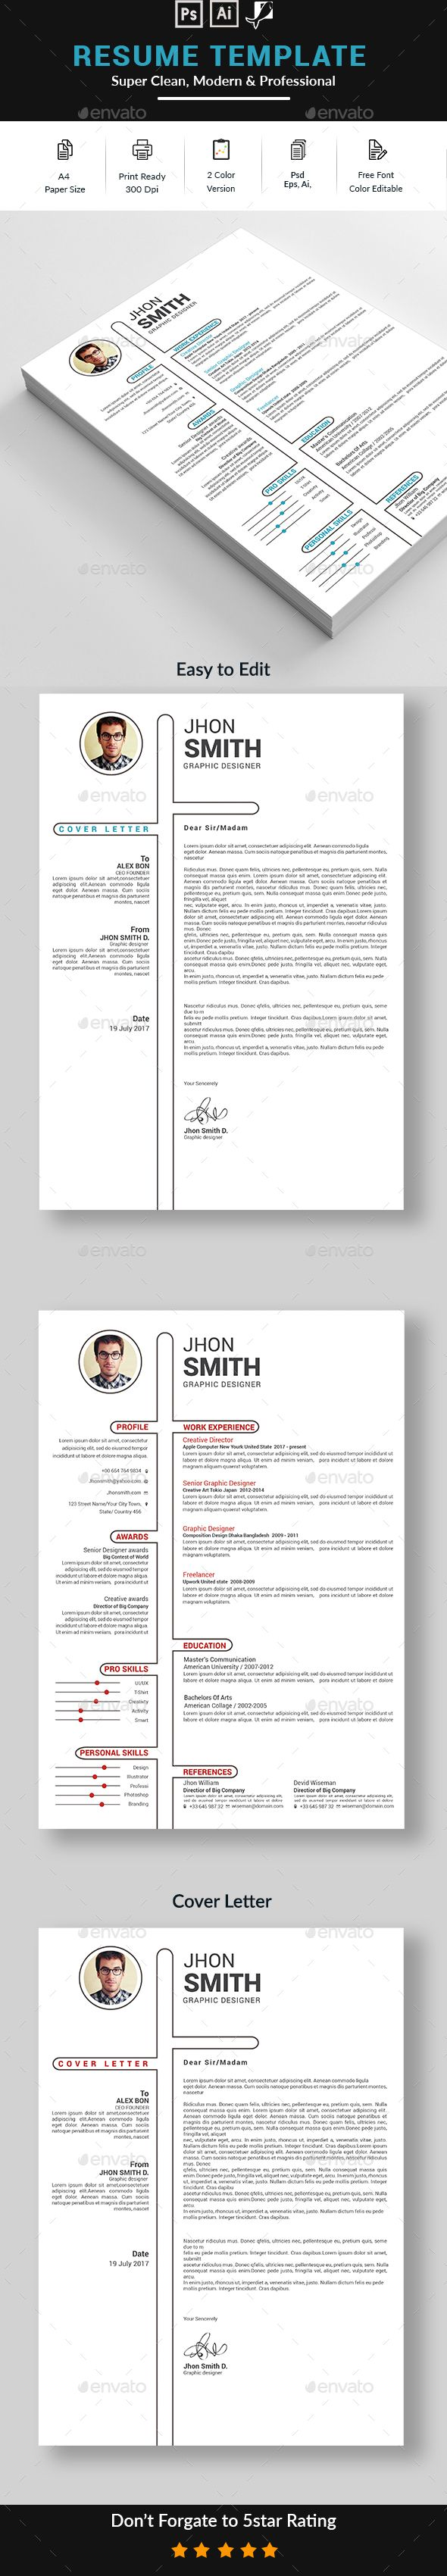 Resume Resume & Cover Letter This is a Resume & Cover